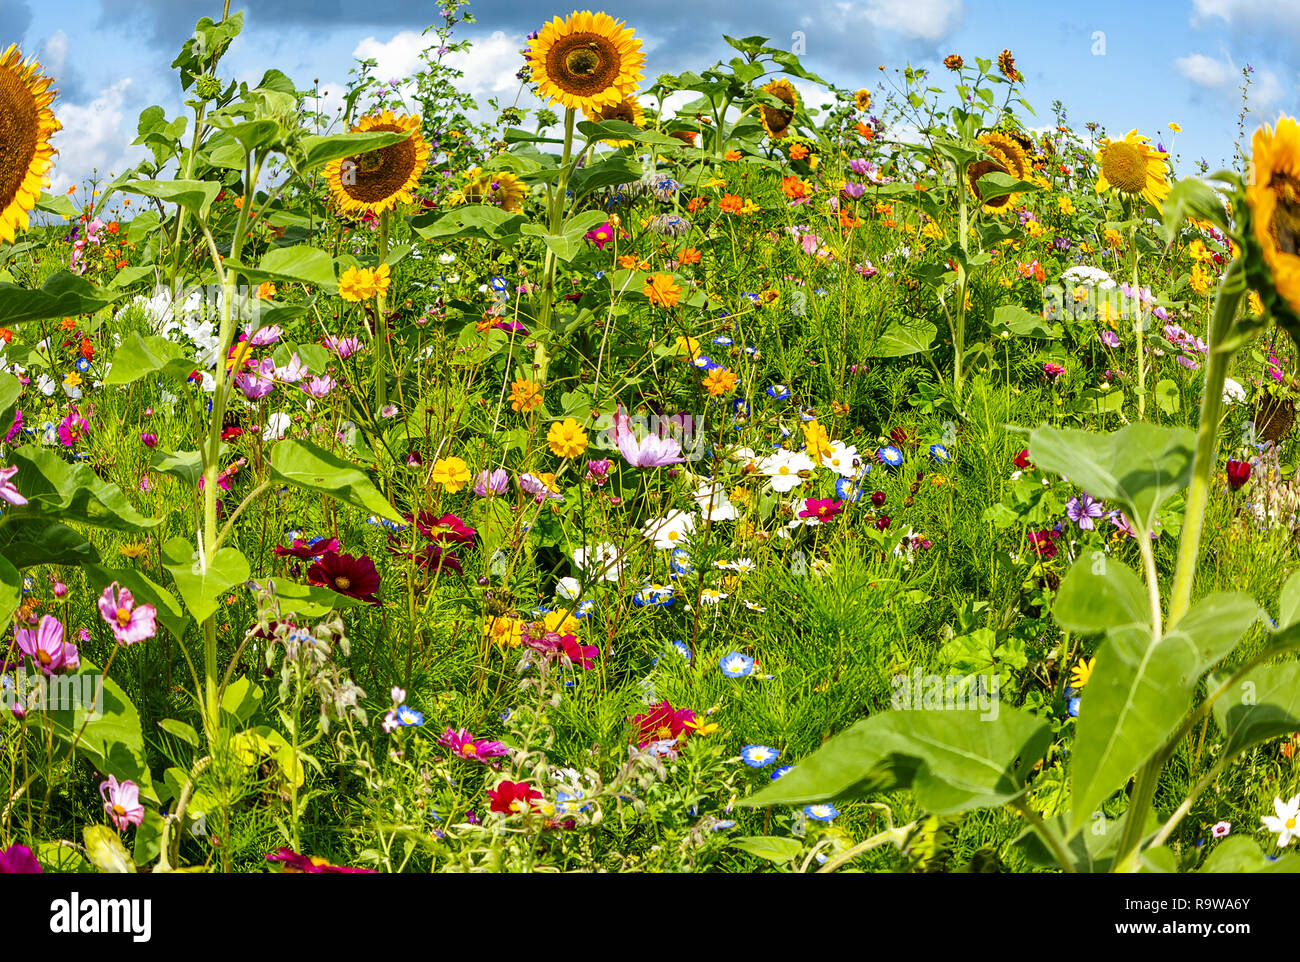 Beautiful summer background - Colorful sunny flower field with wild flowers - Stock Image